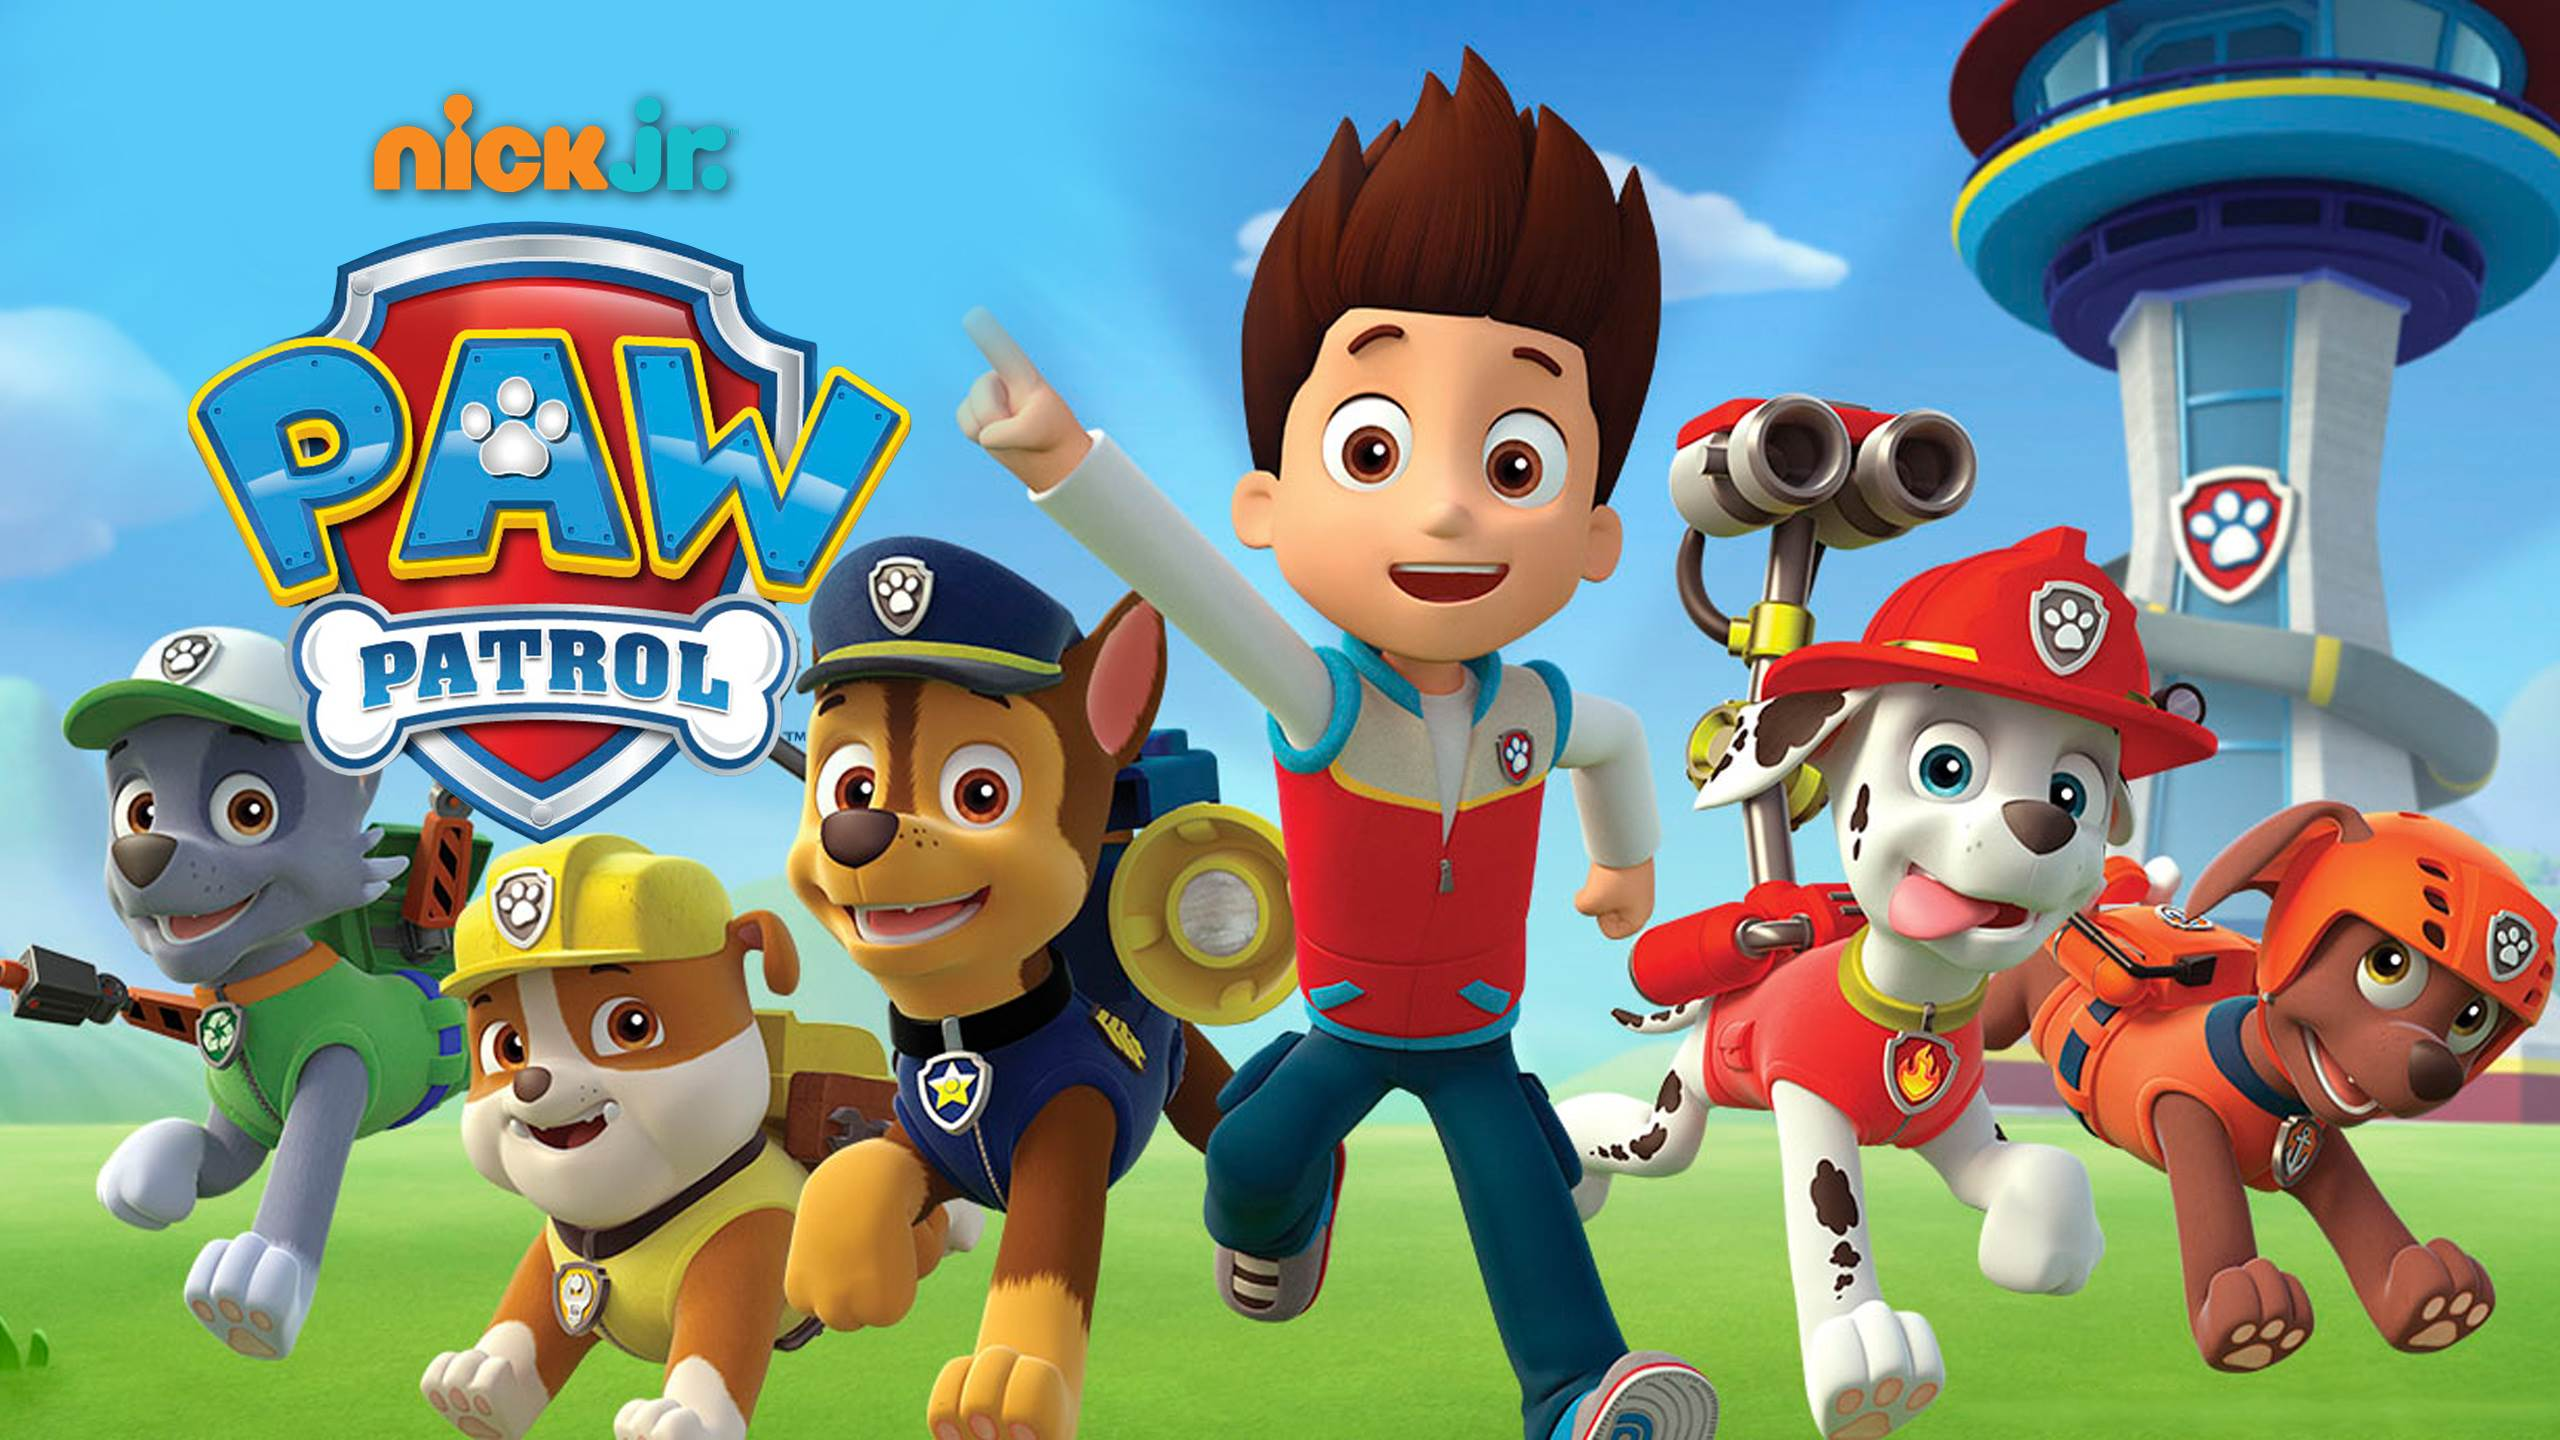 chase paw patrol wallpapers  top free chase paw patrol